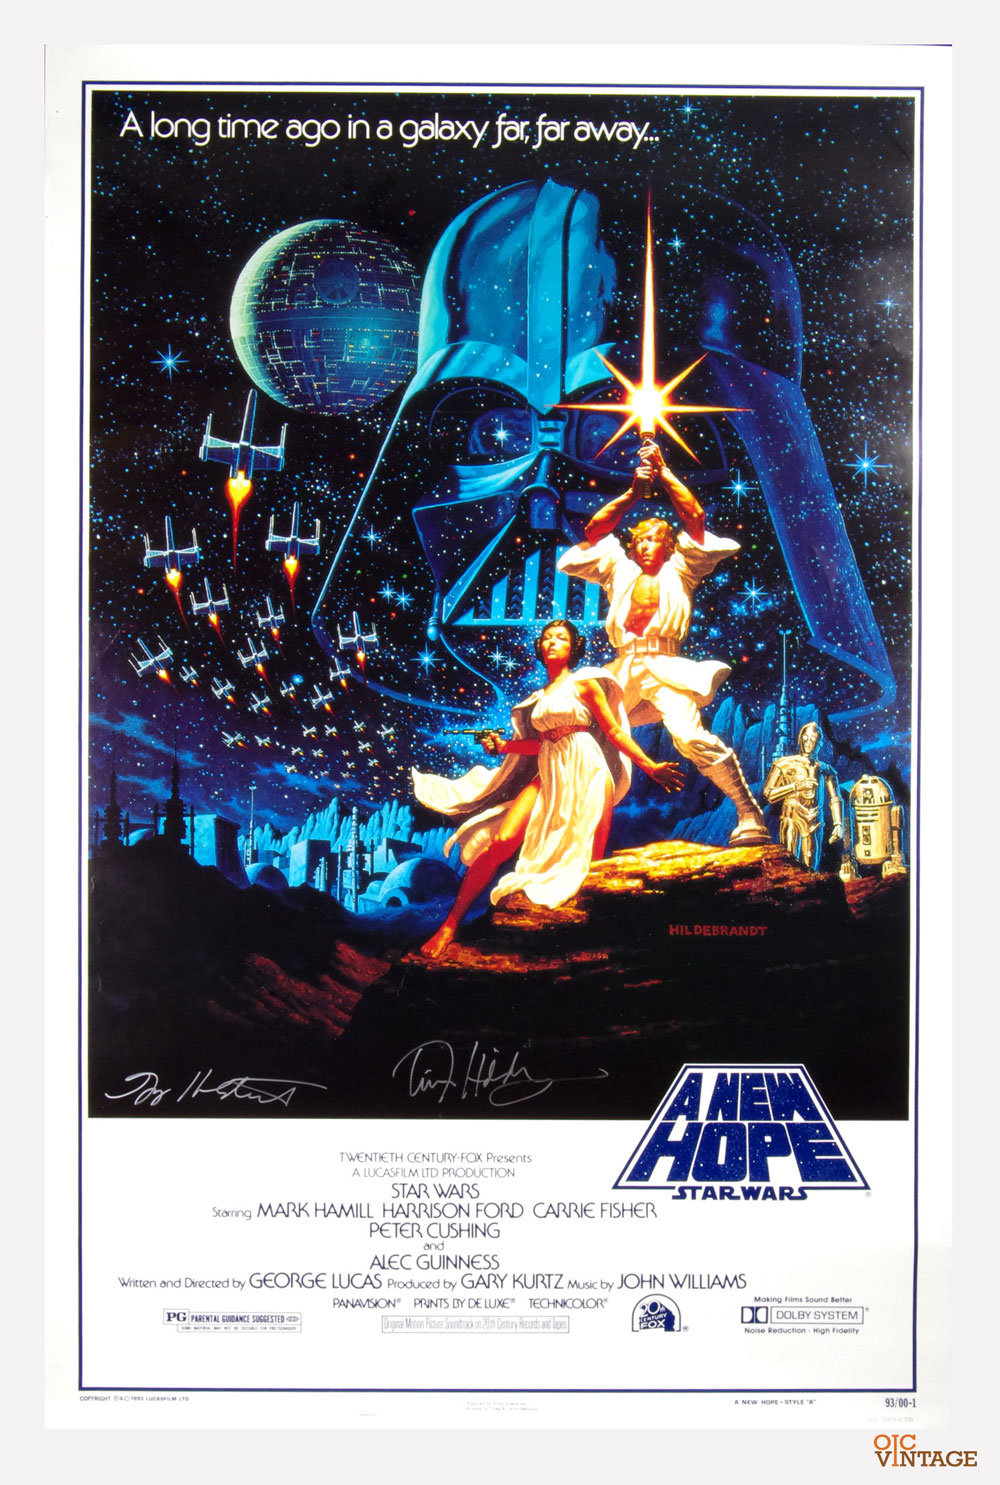 Star Wars Poster A New Hope 15th Anniversary Greg Tim Hildebrandt Signed